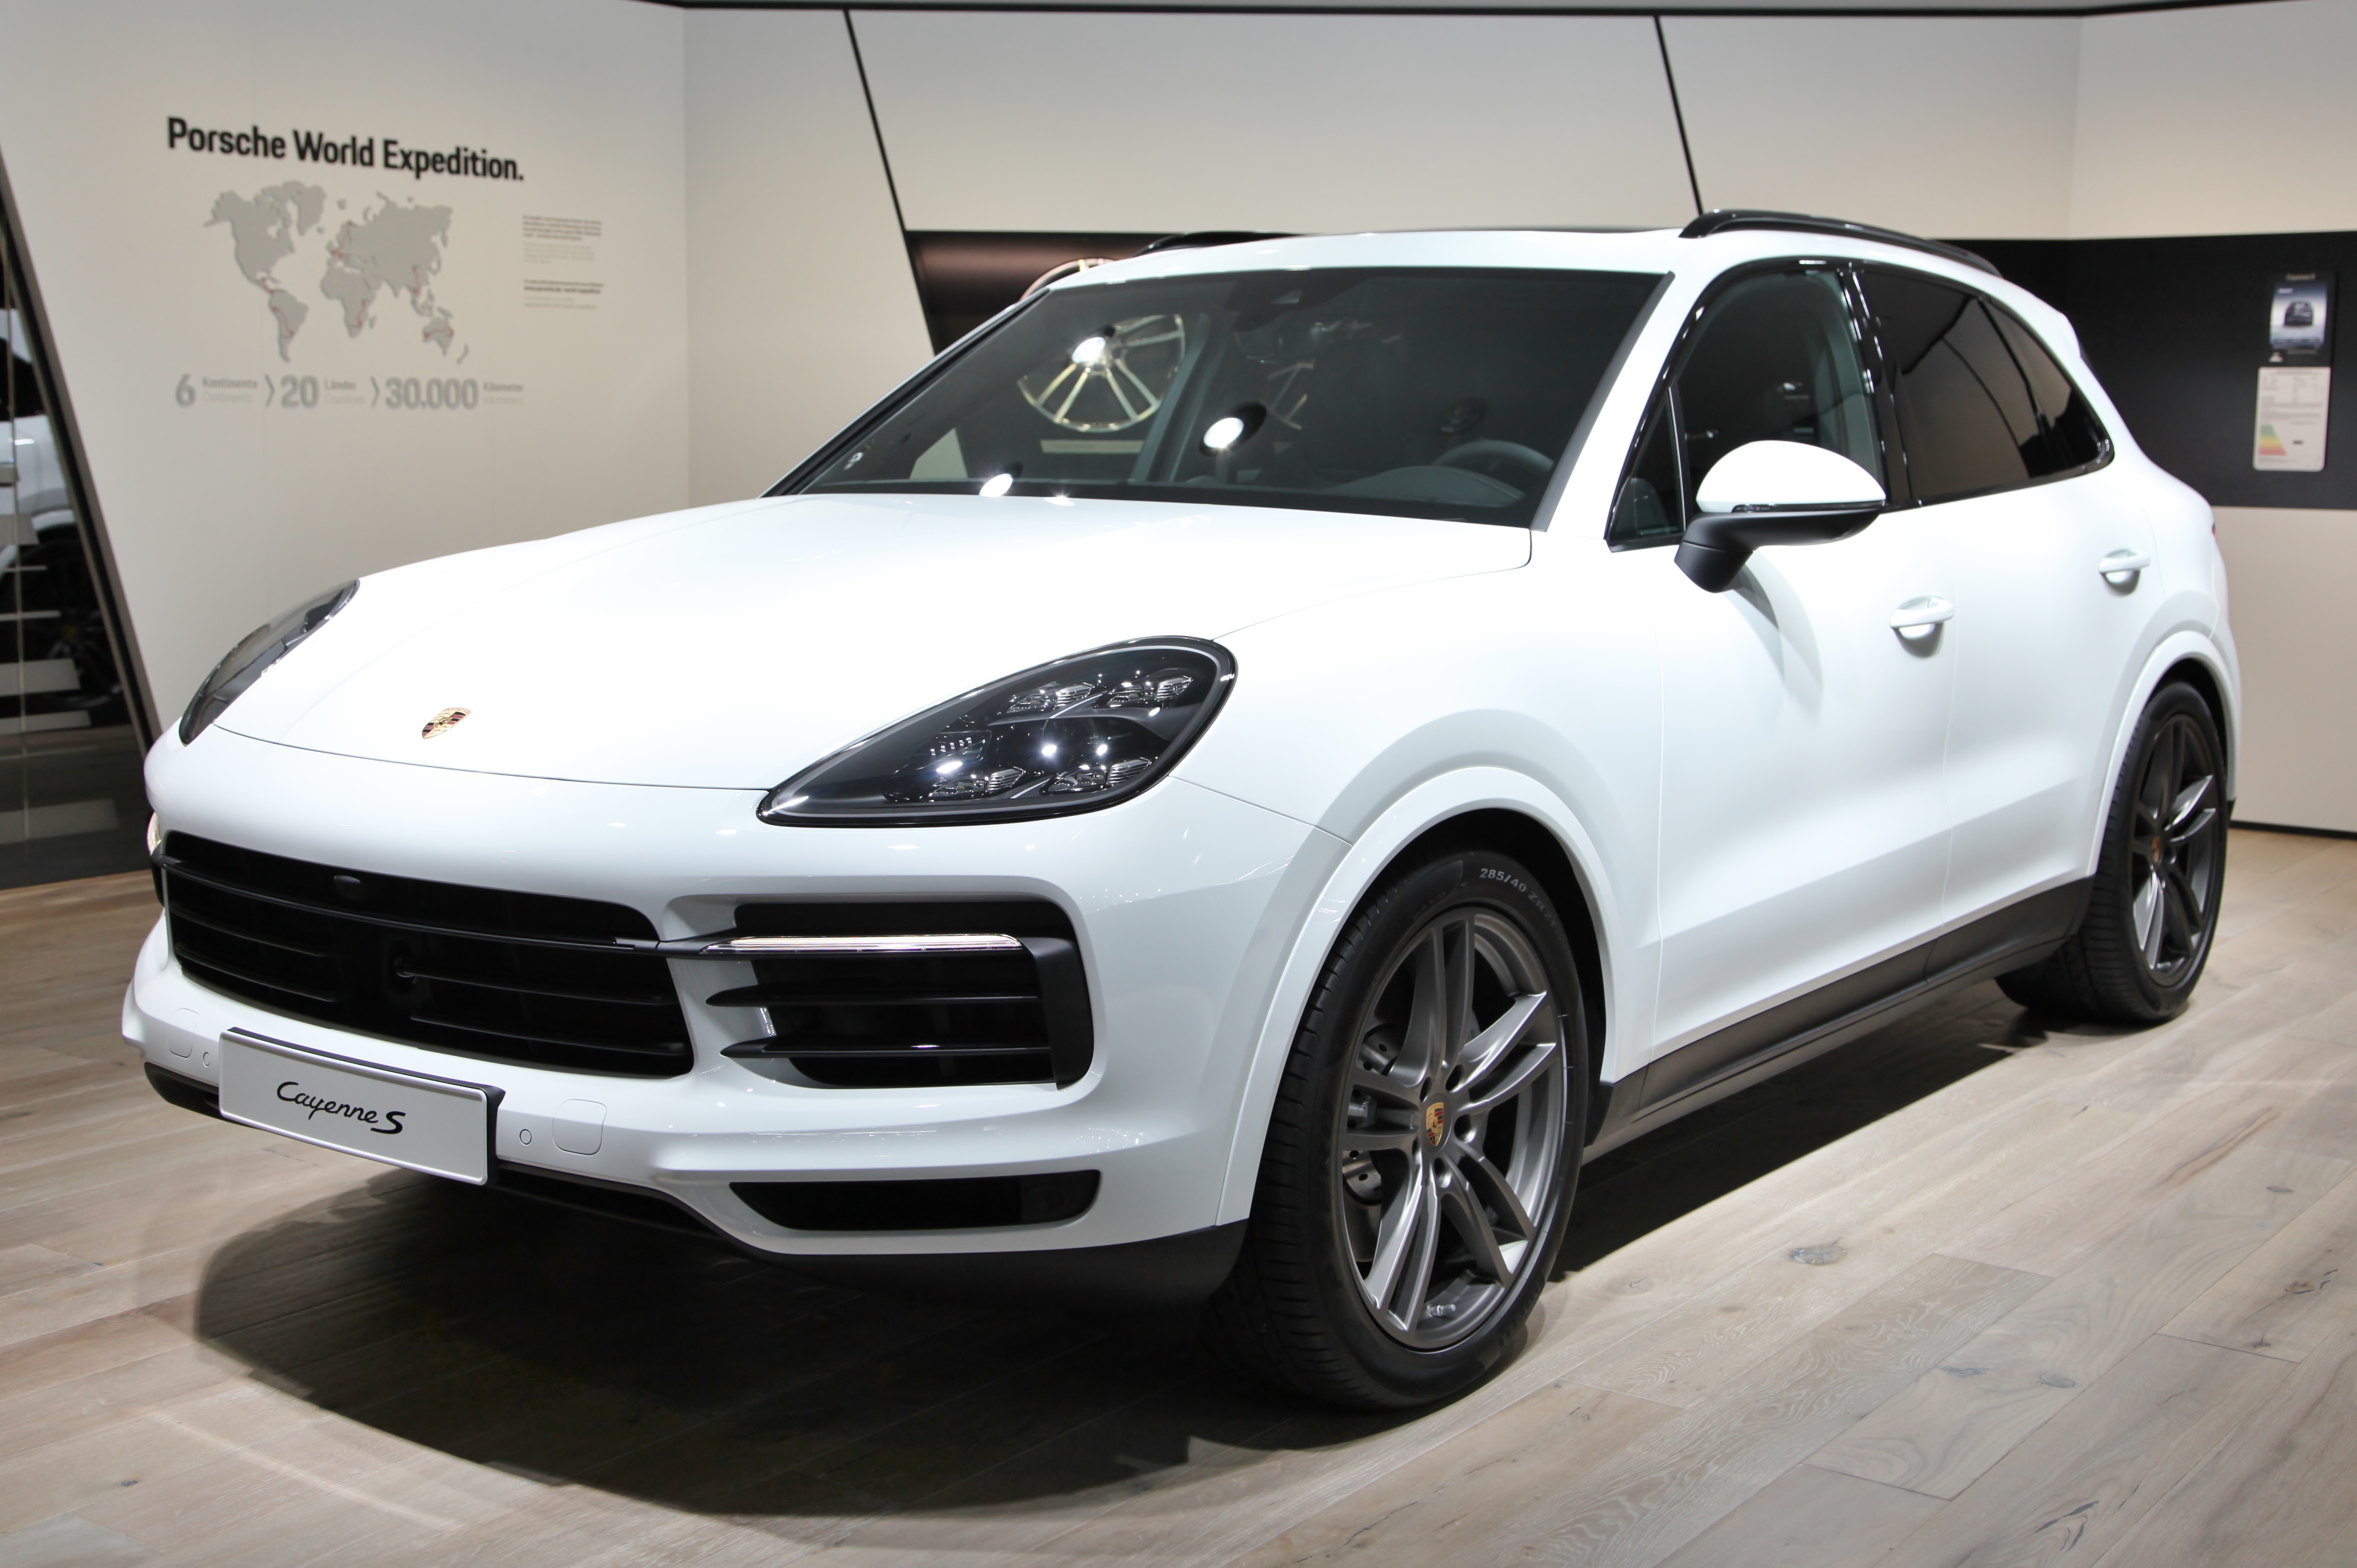 file porsche cayenne s img wikimedia commons. Black Bedroom Furniture Sets. Home Design Ideas